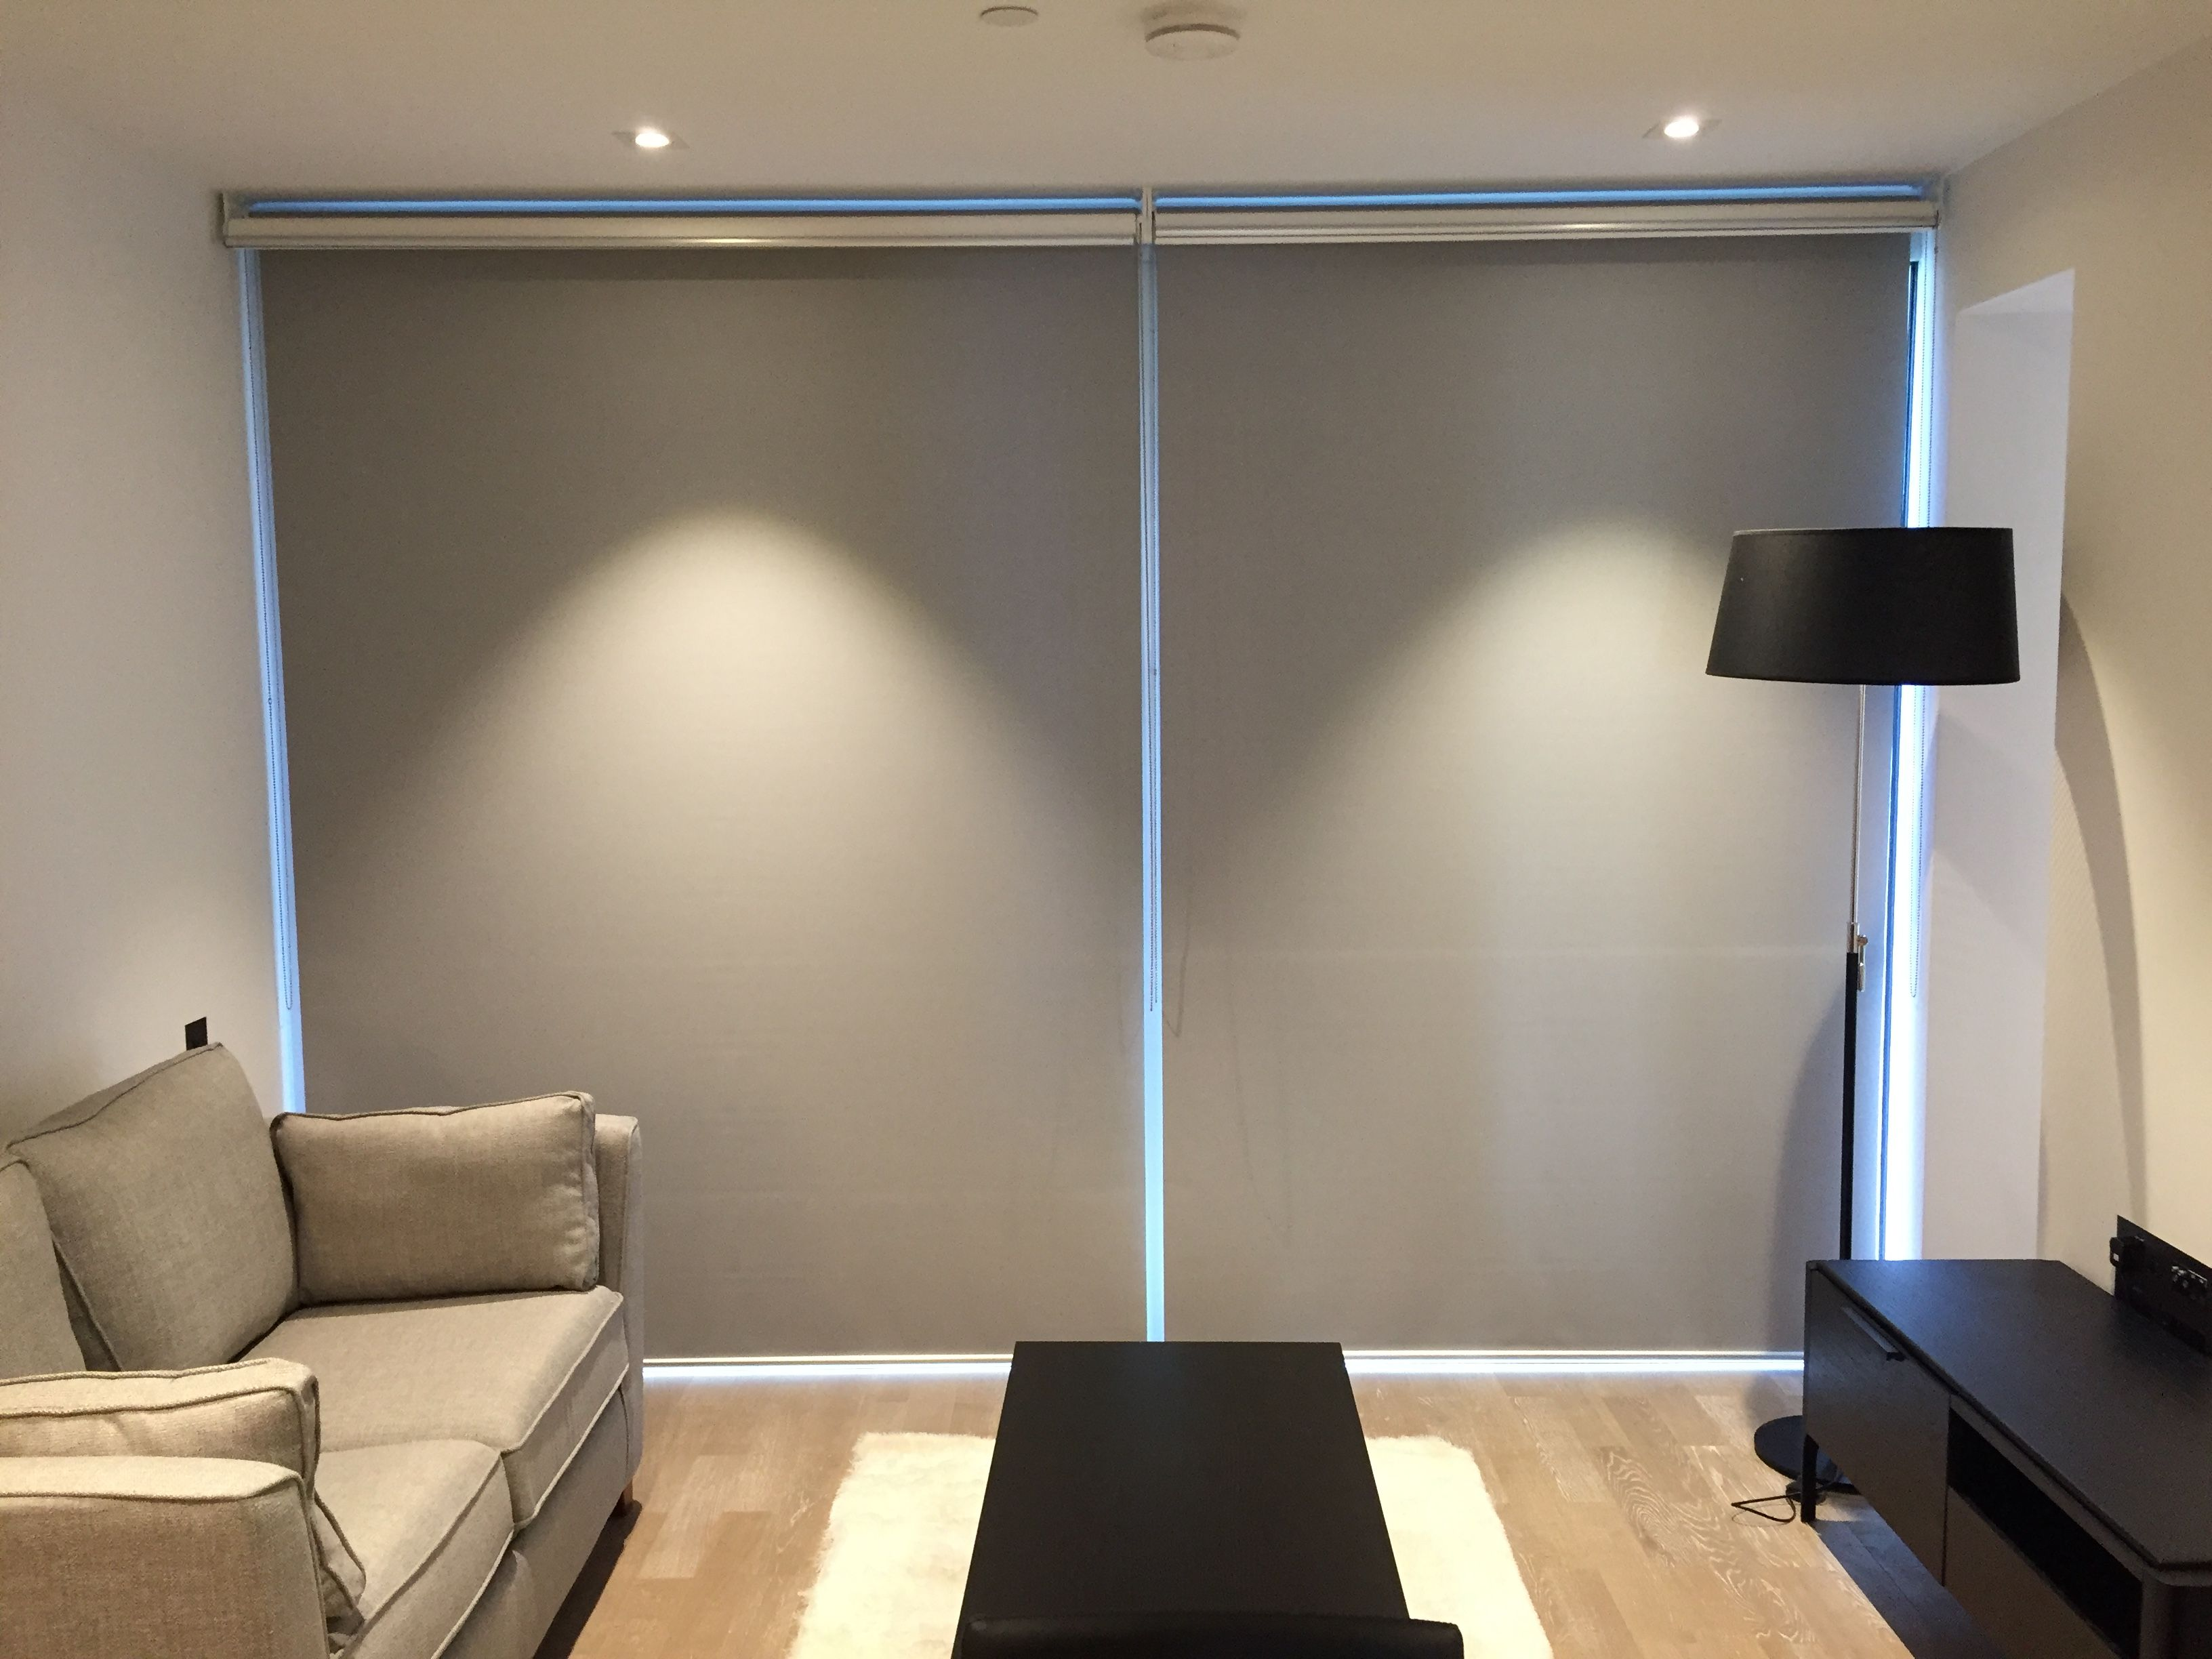 Double Dual Roller Blinds Showing The Blackout Roller